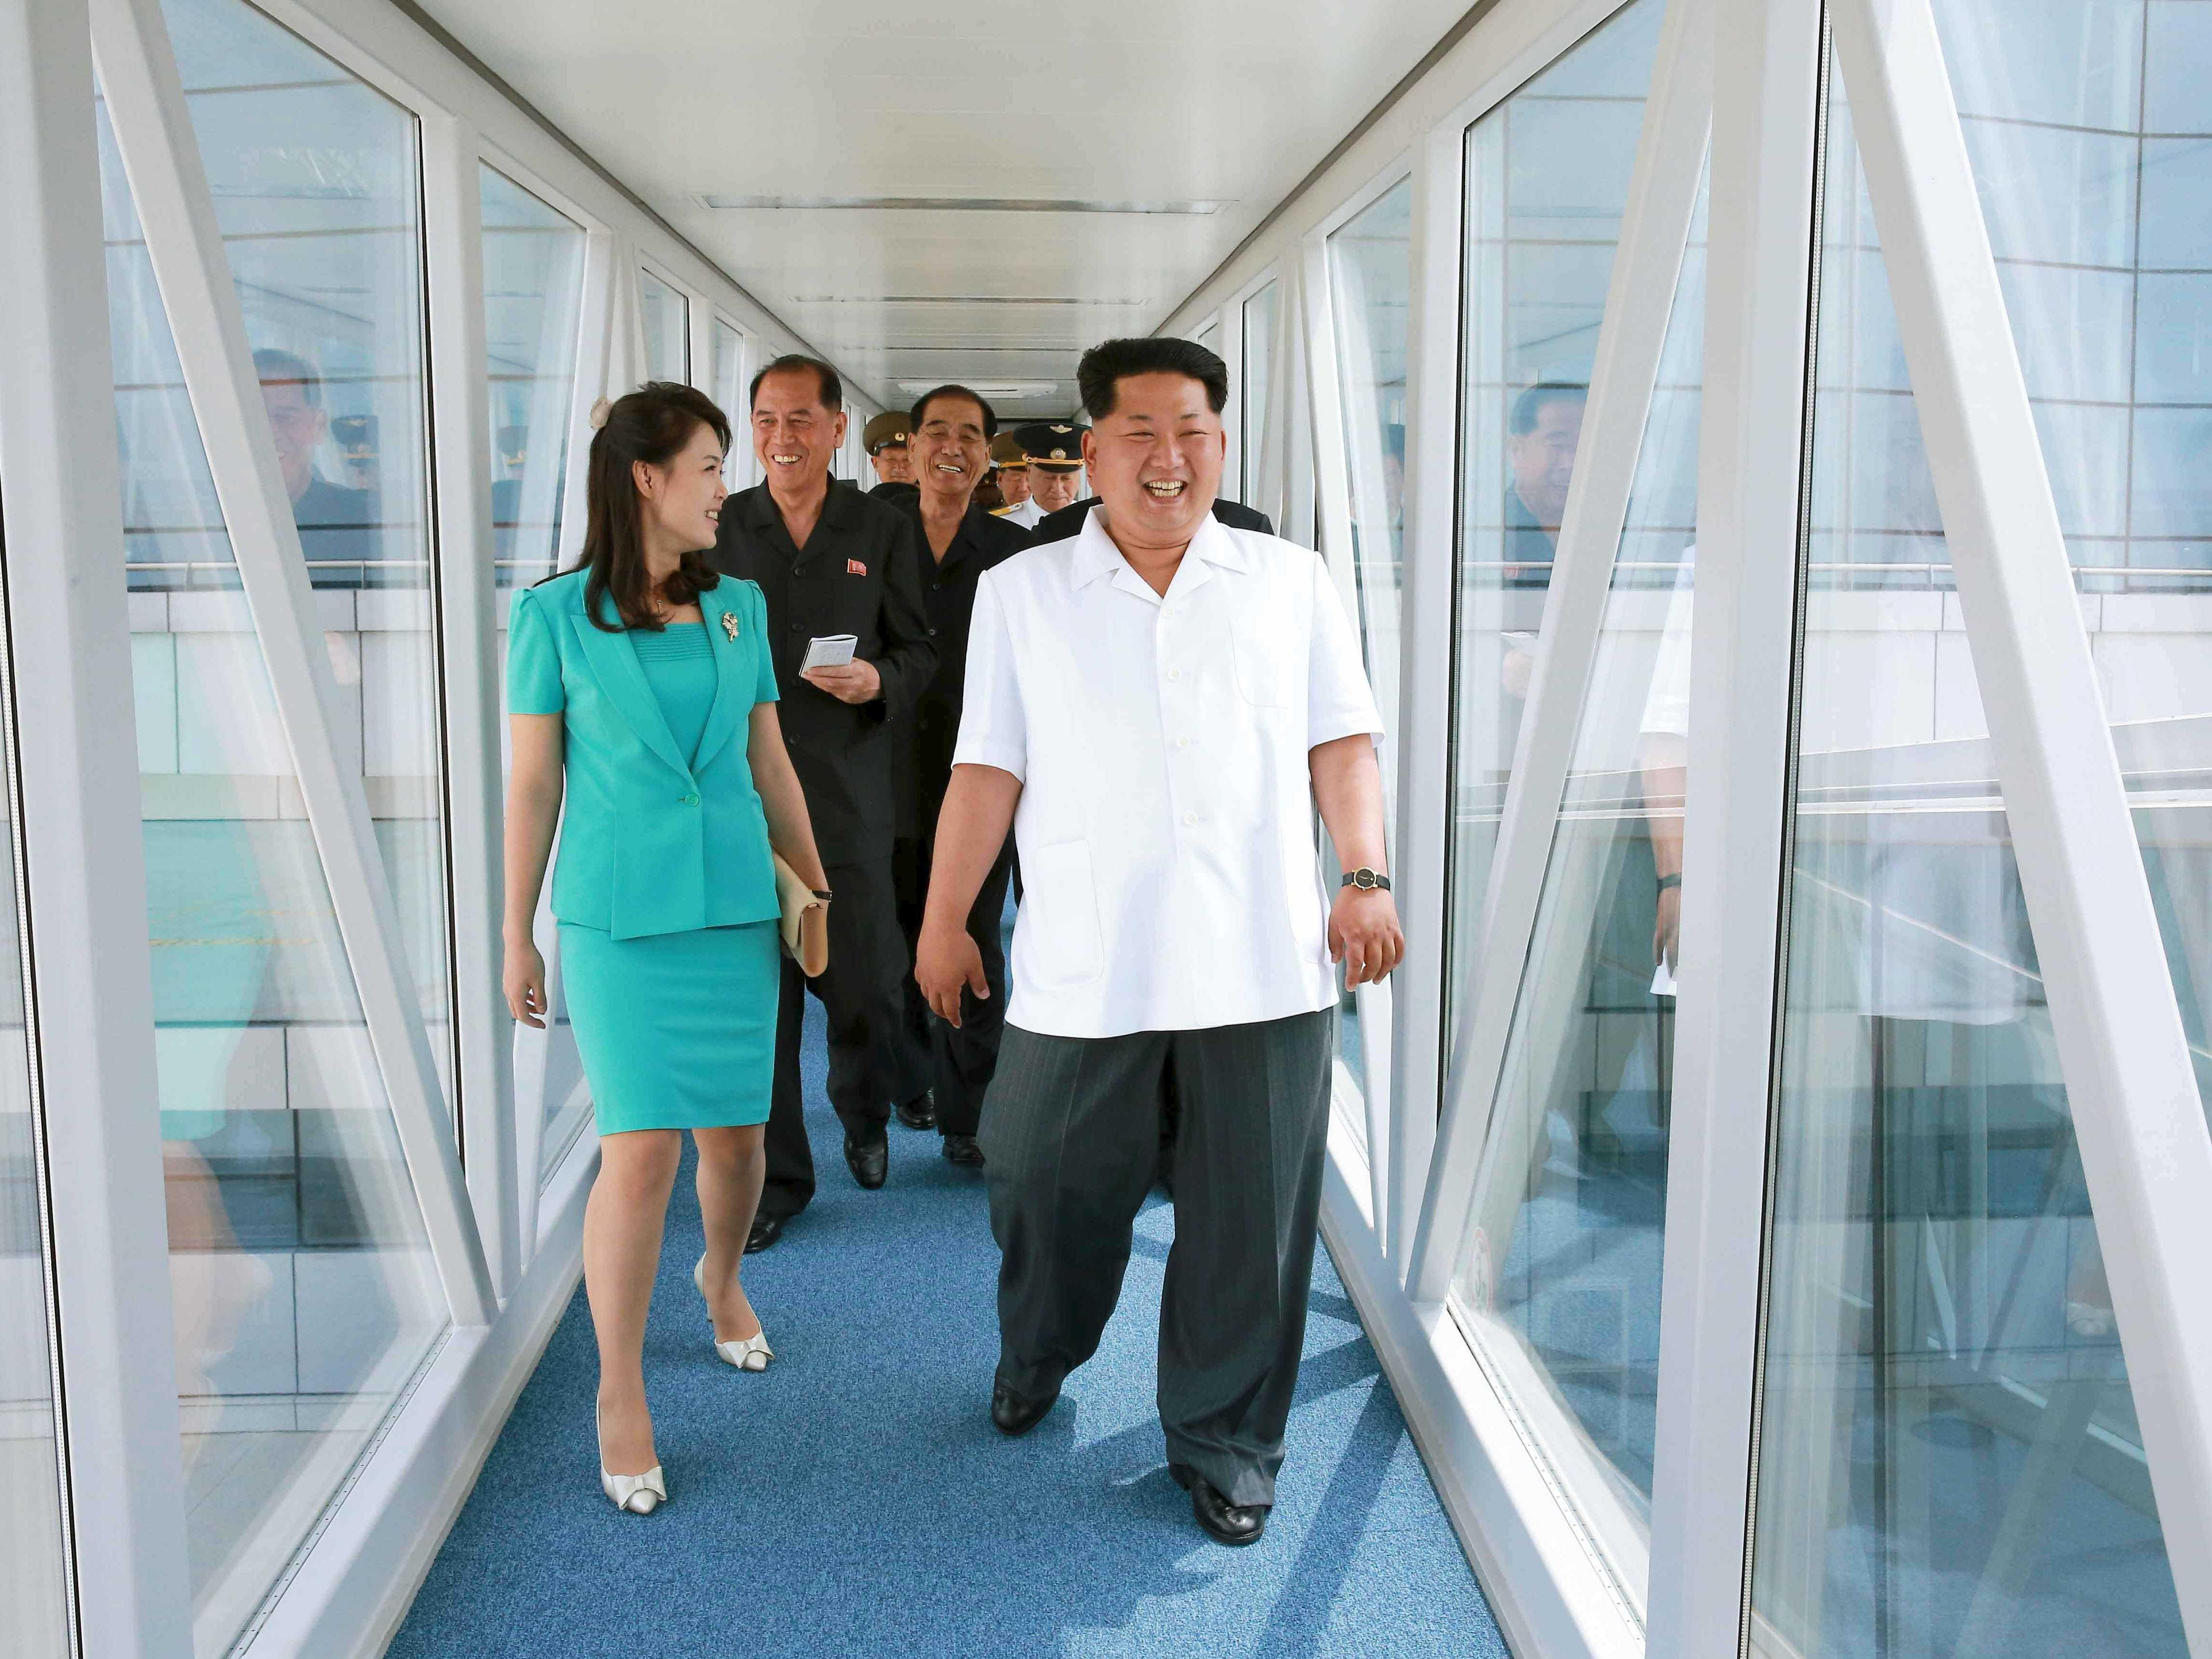 North Korea's stunning new airport puts many American airports to shame